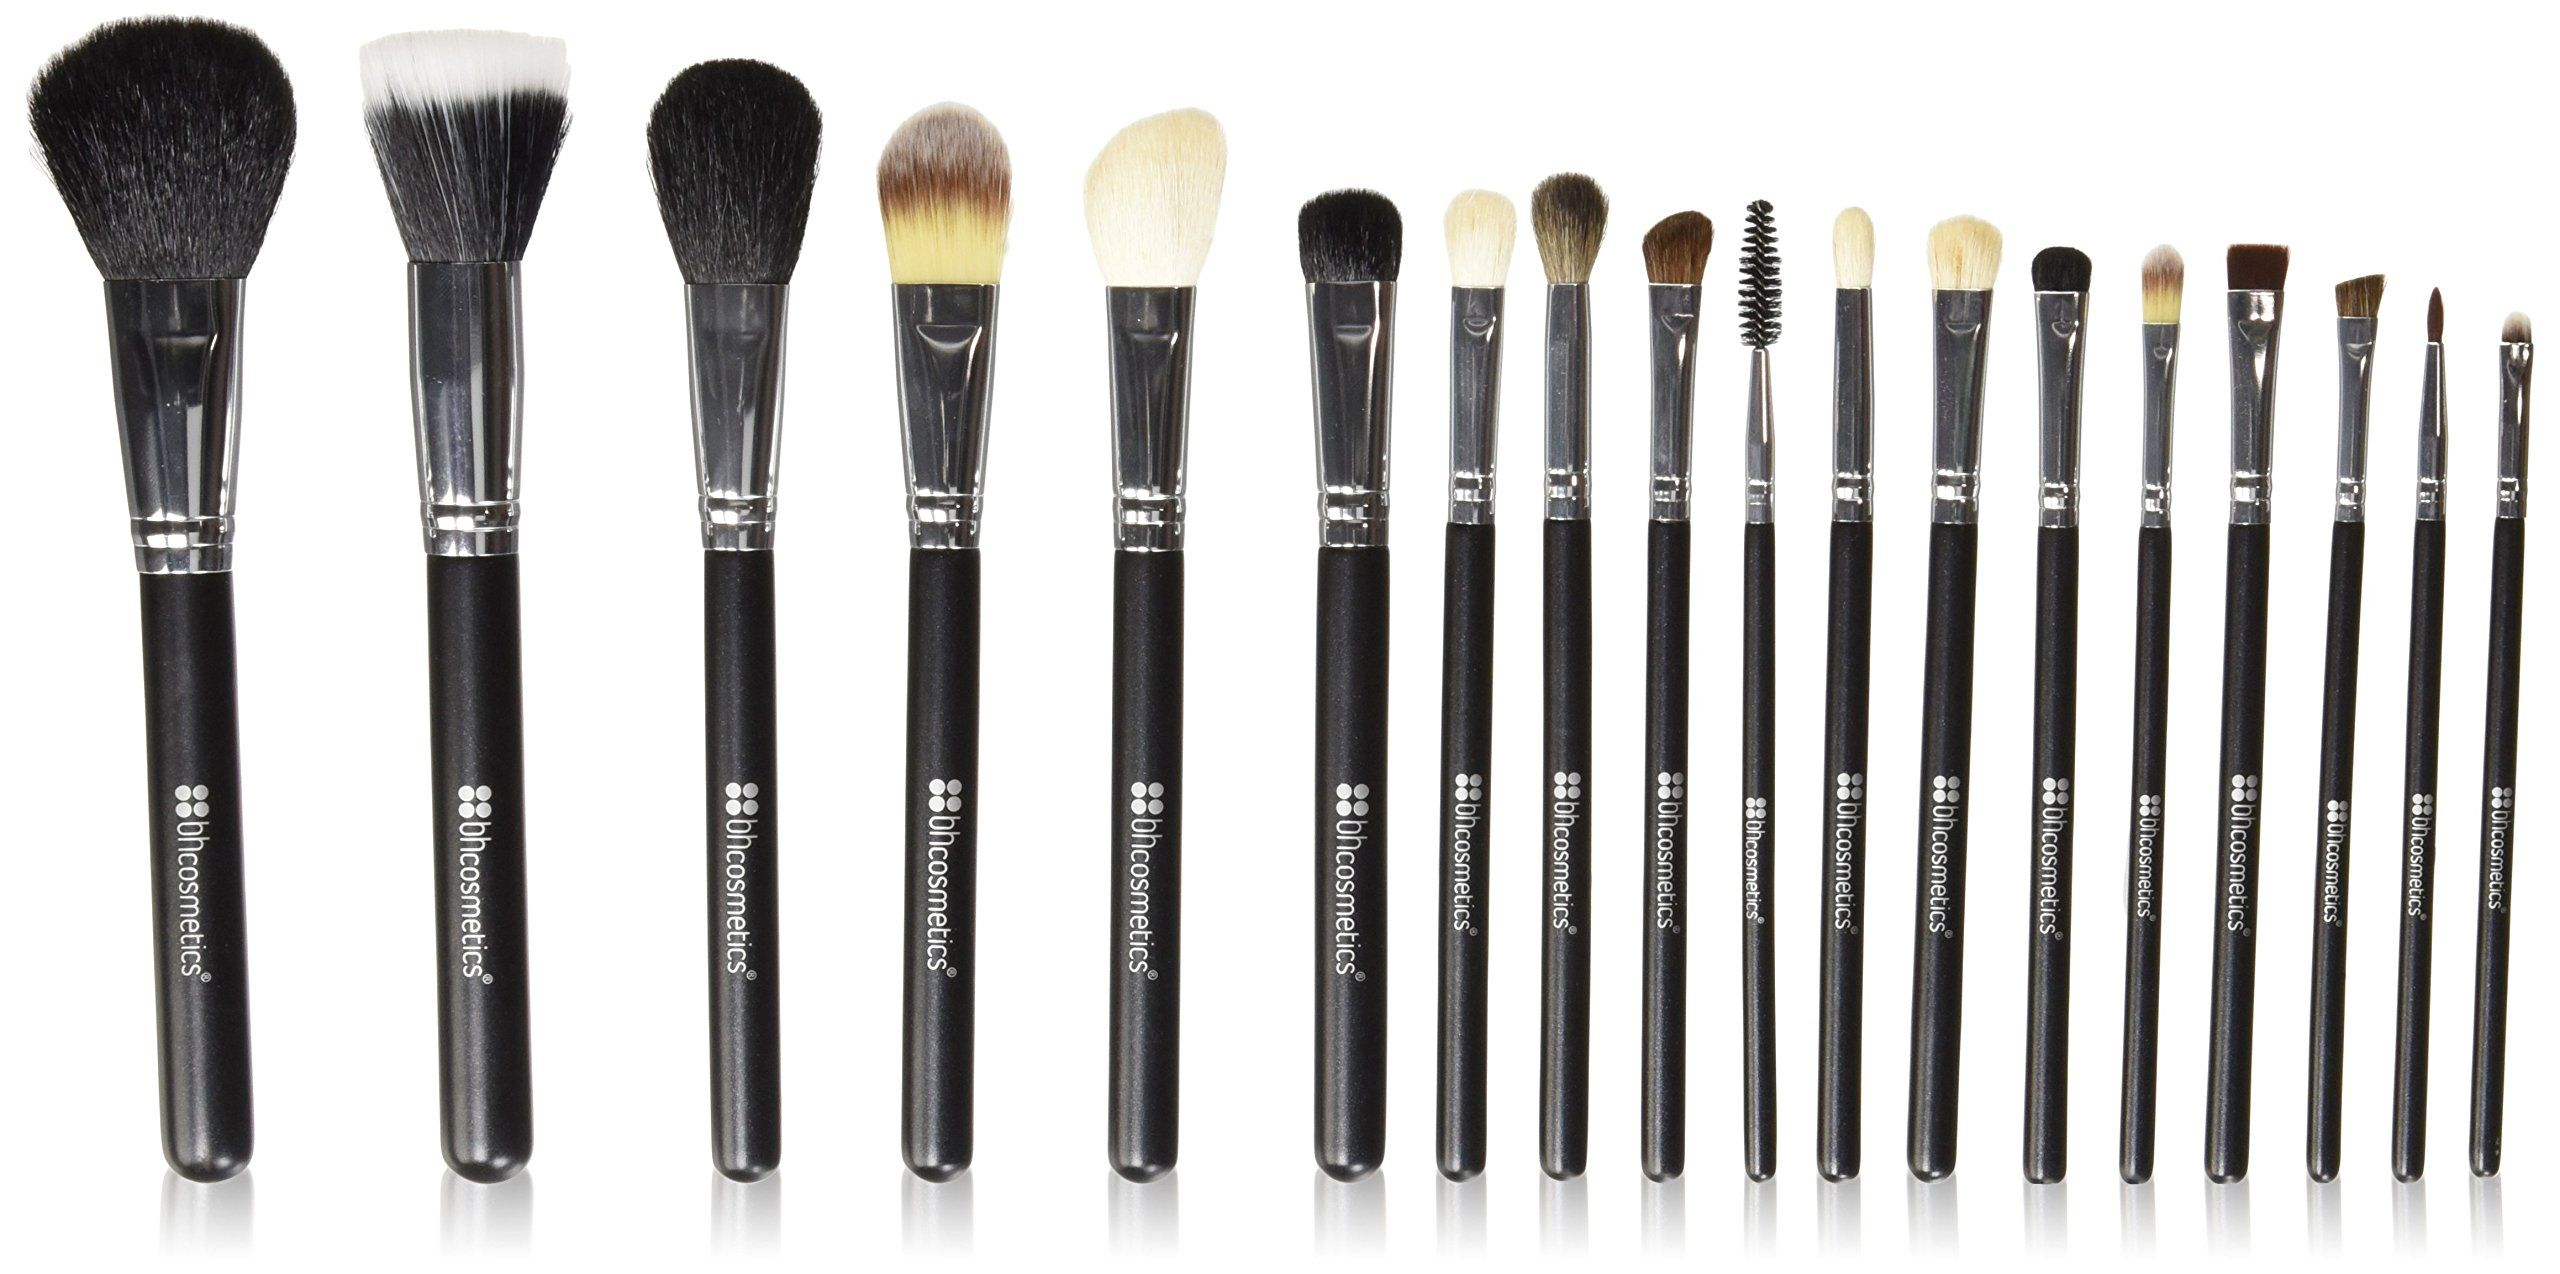 BH Cosmetics Studio Pro Brush Set with Belt Makeup brush